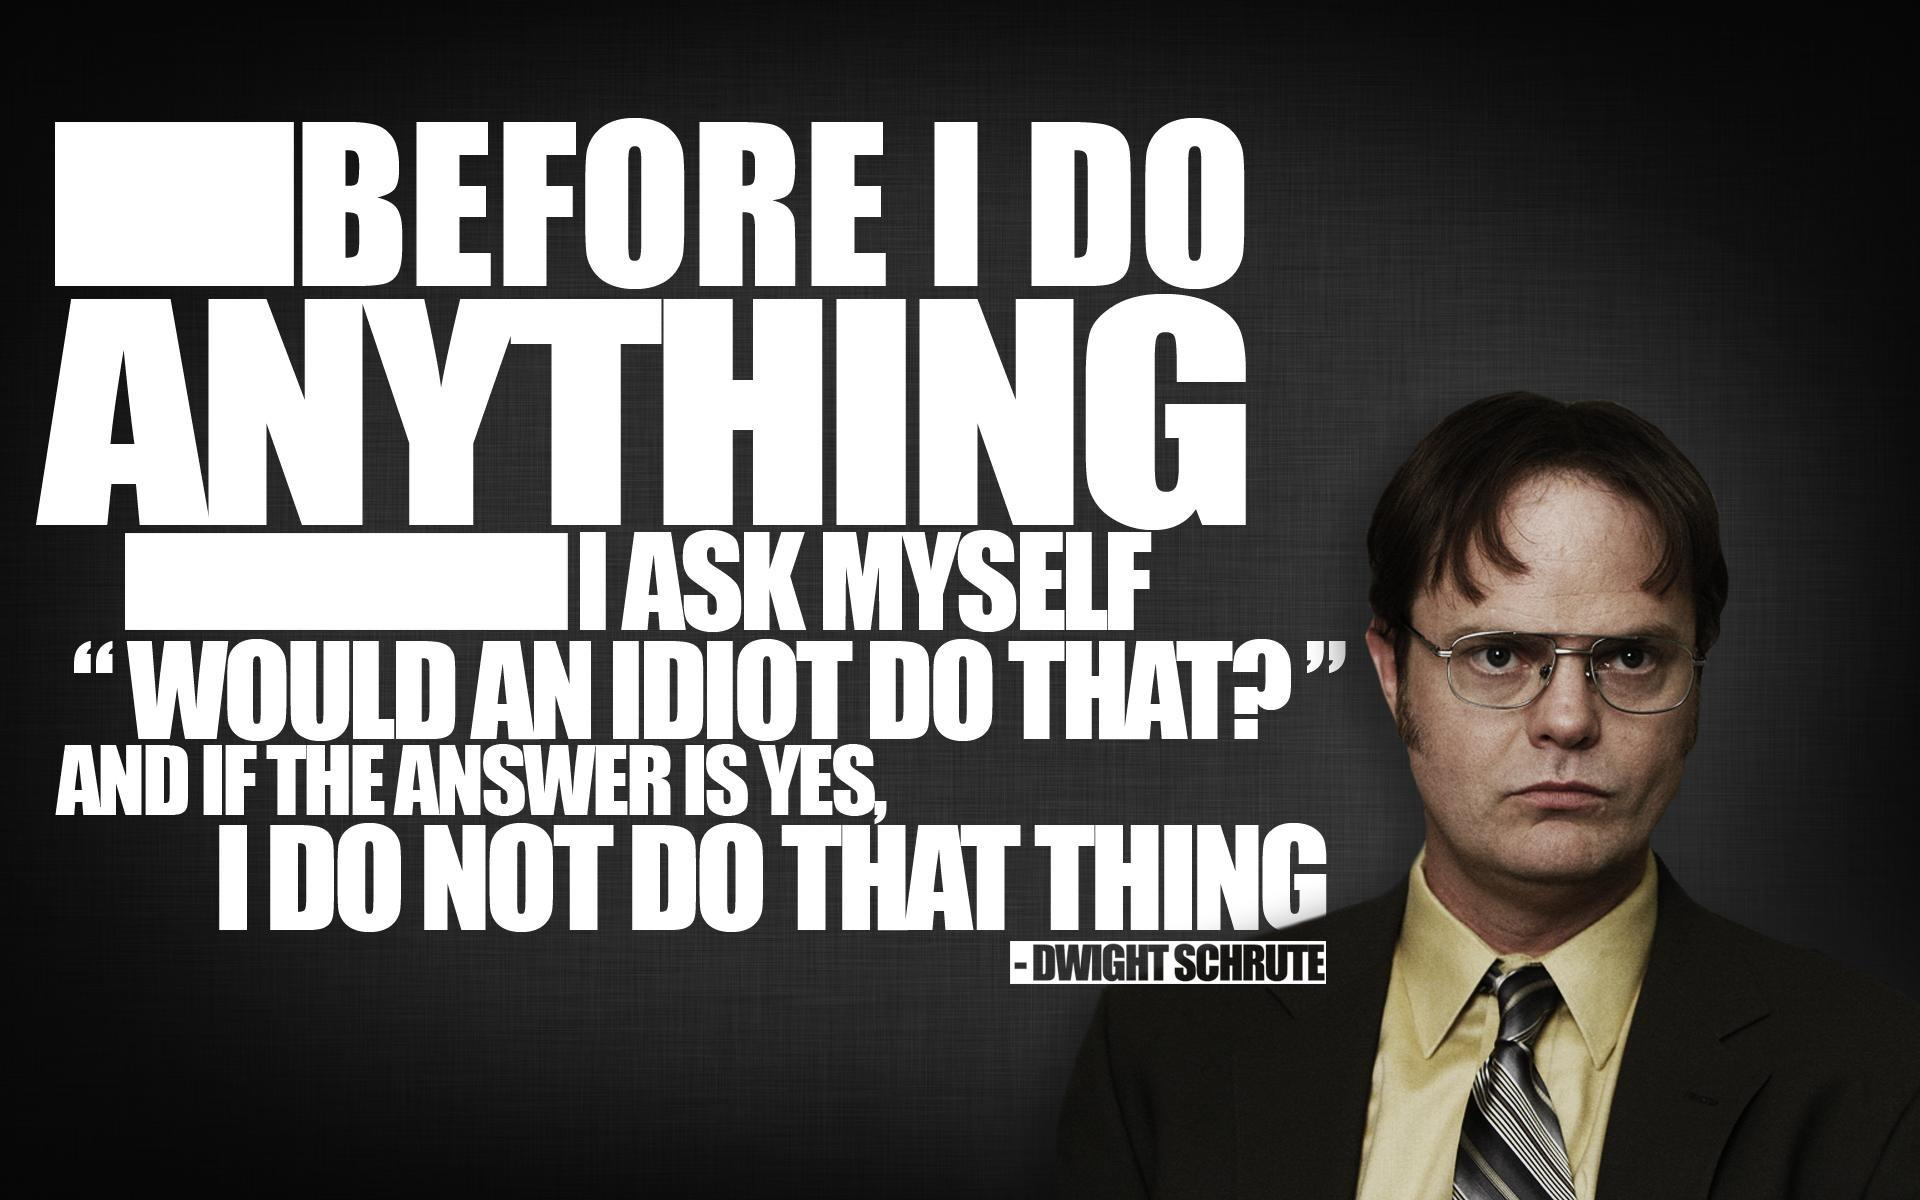 Office quote #2